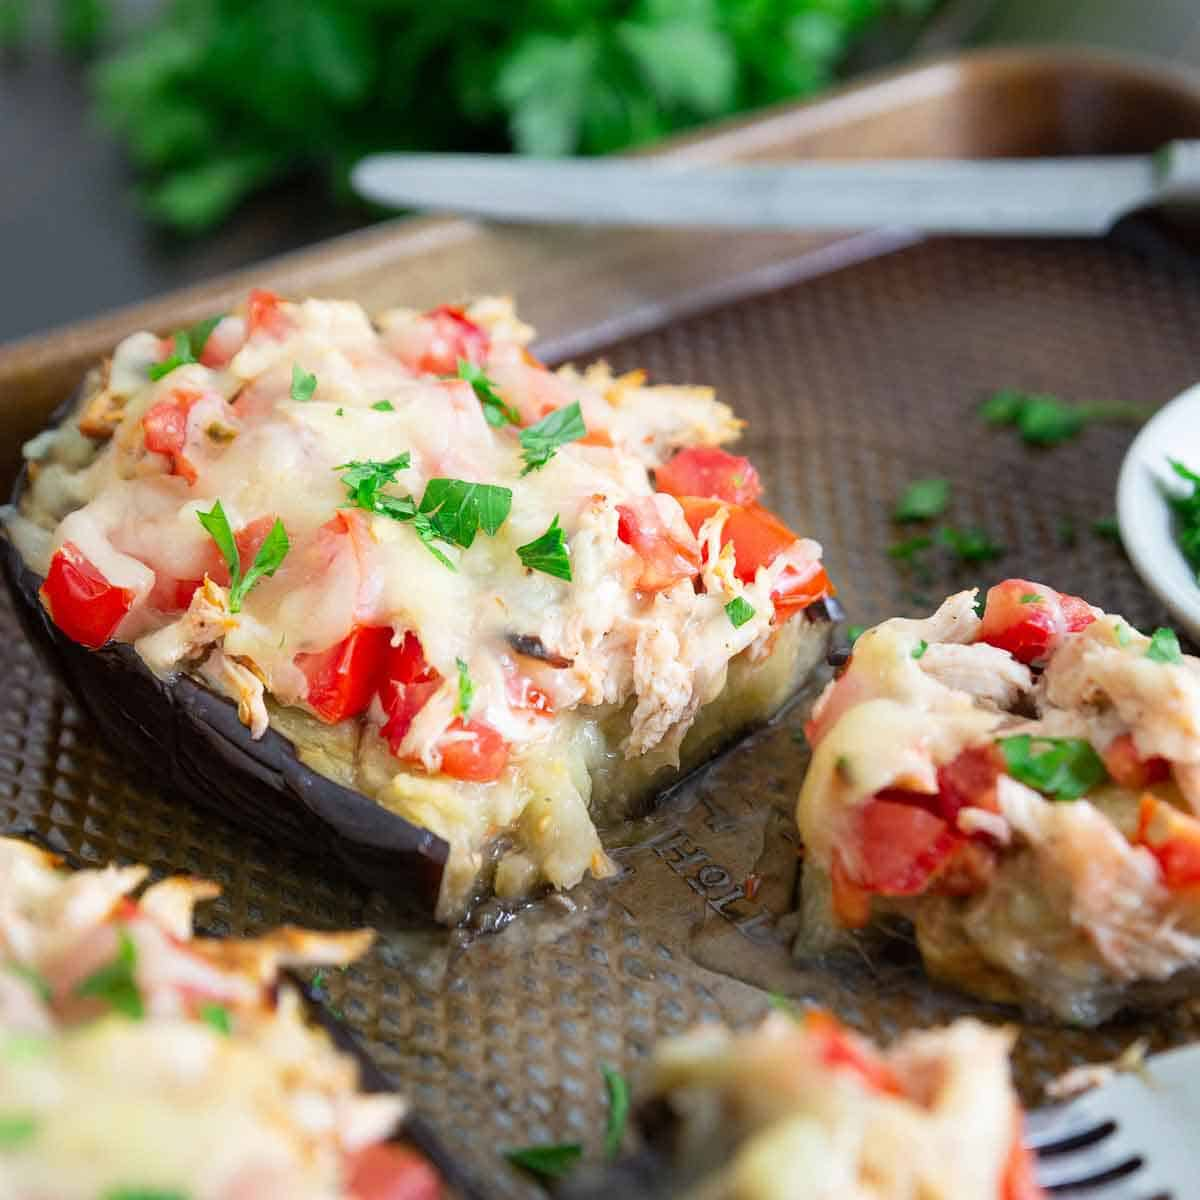 Try this stuffed eggplant chicken recipe for an easy dinner this summer.